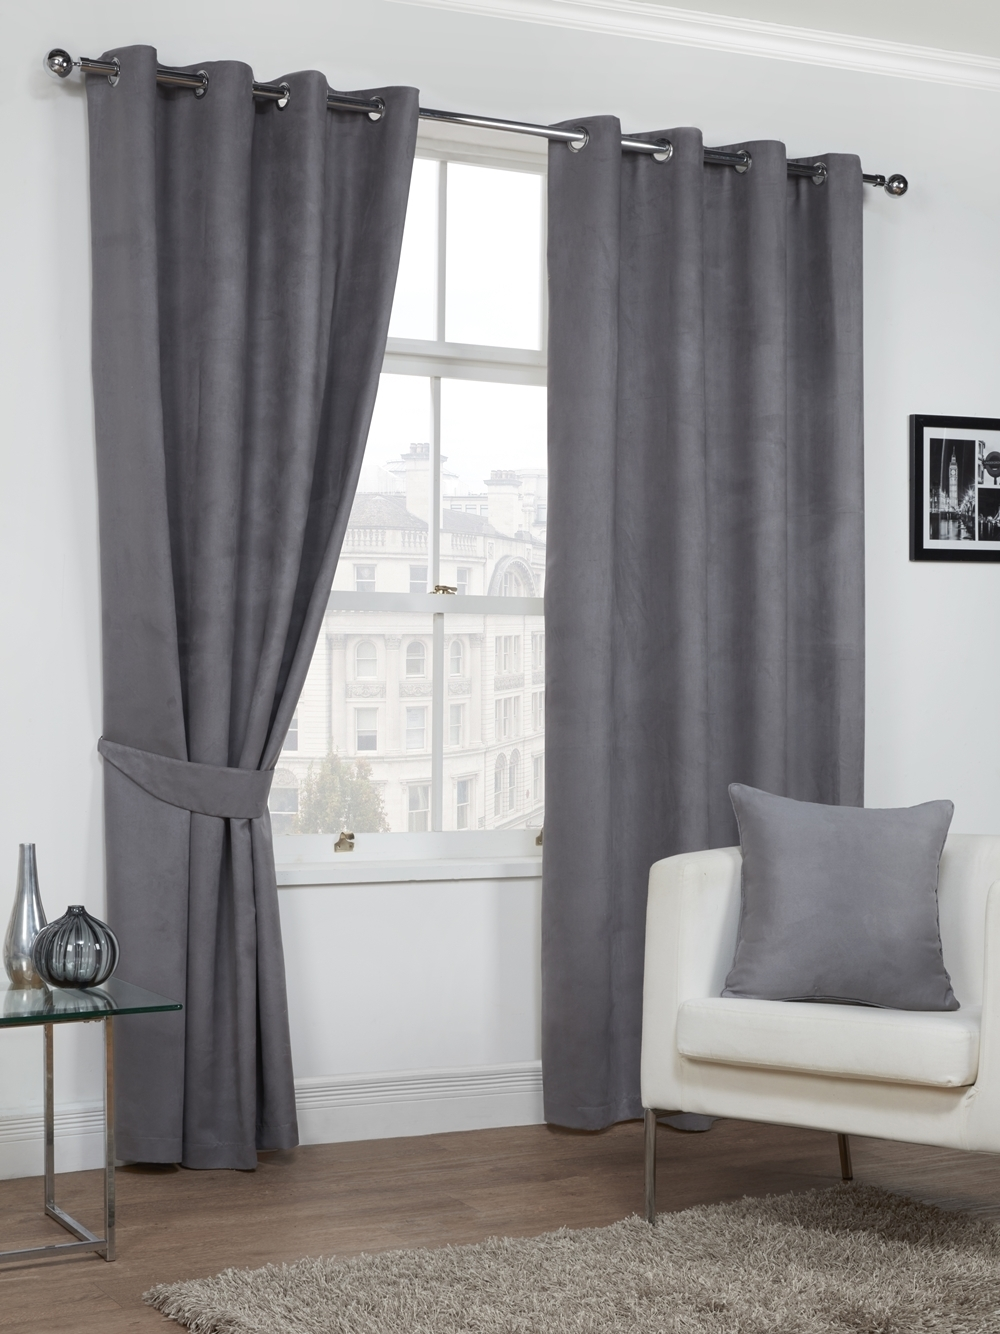 Curtains Grey Faux Suede Ready Made Lined Soft Ring Top Eyelet Pair New Ebay